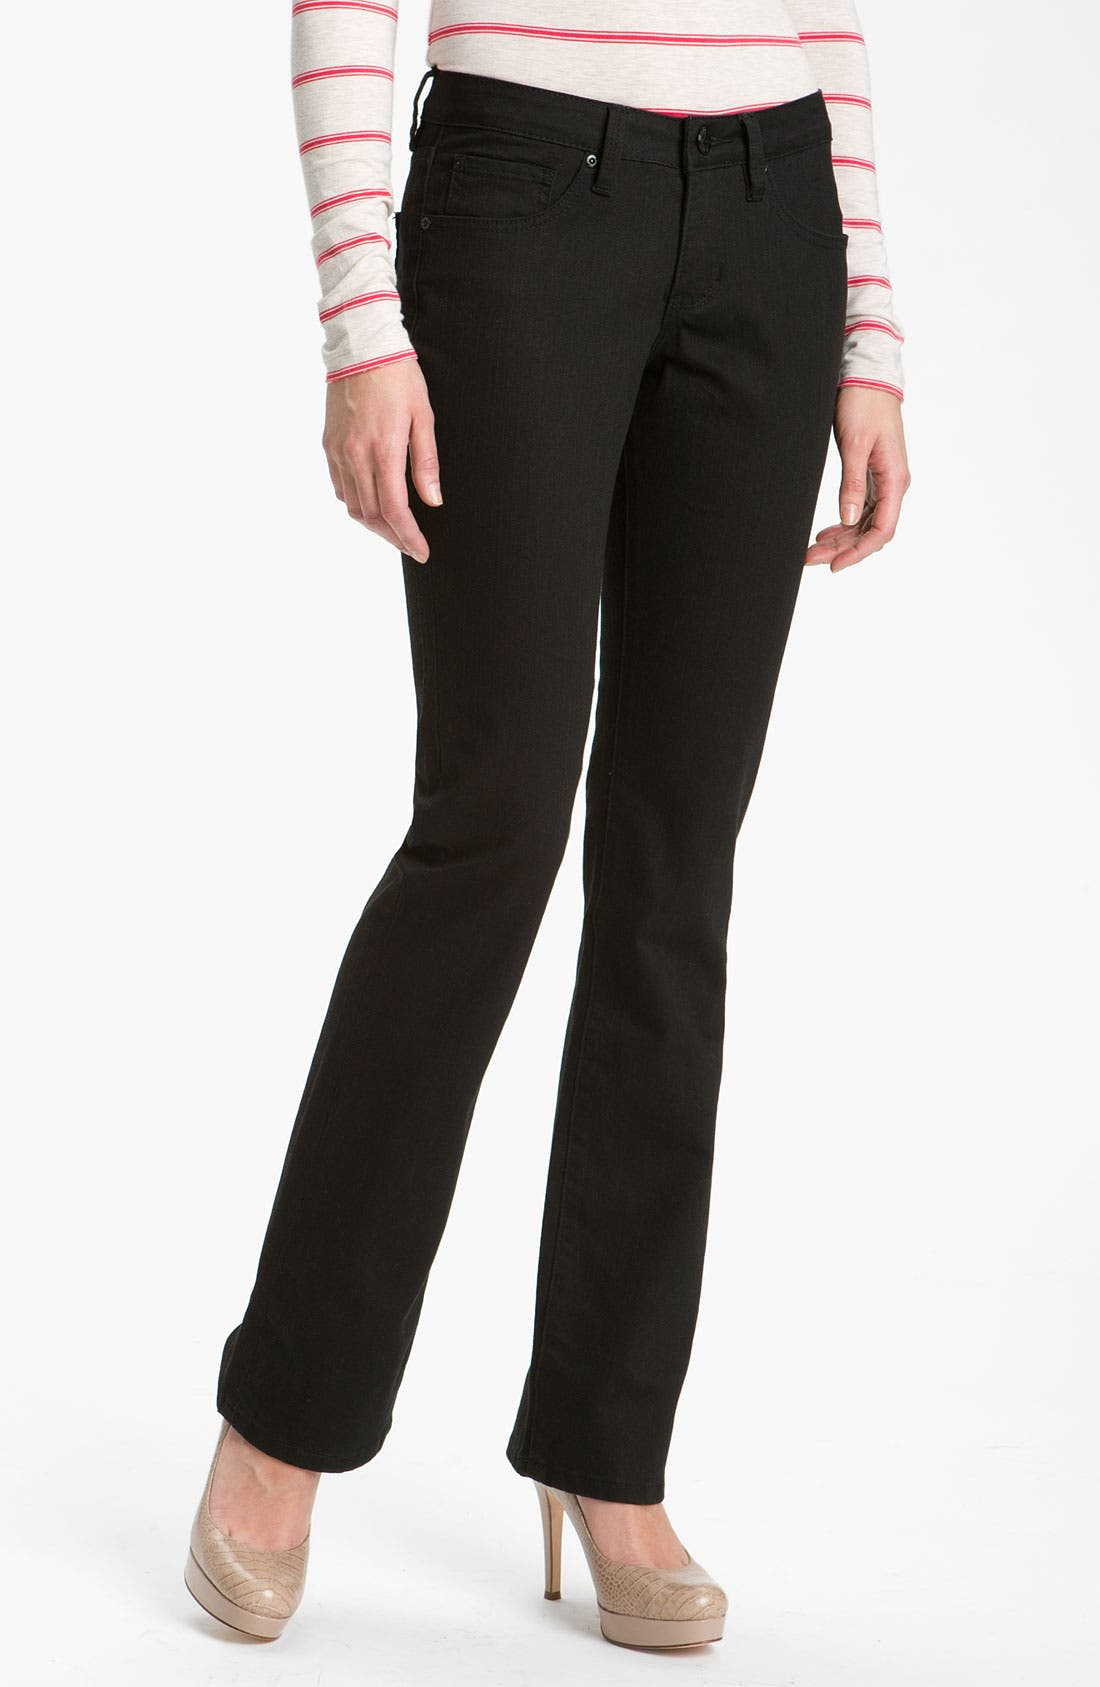 Main Image - Jag Jeans 'Lucy' Bootcut Stretch Jeans (Black Wash) (Online Exclusive)